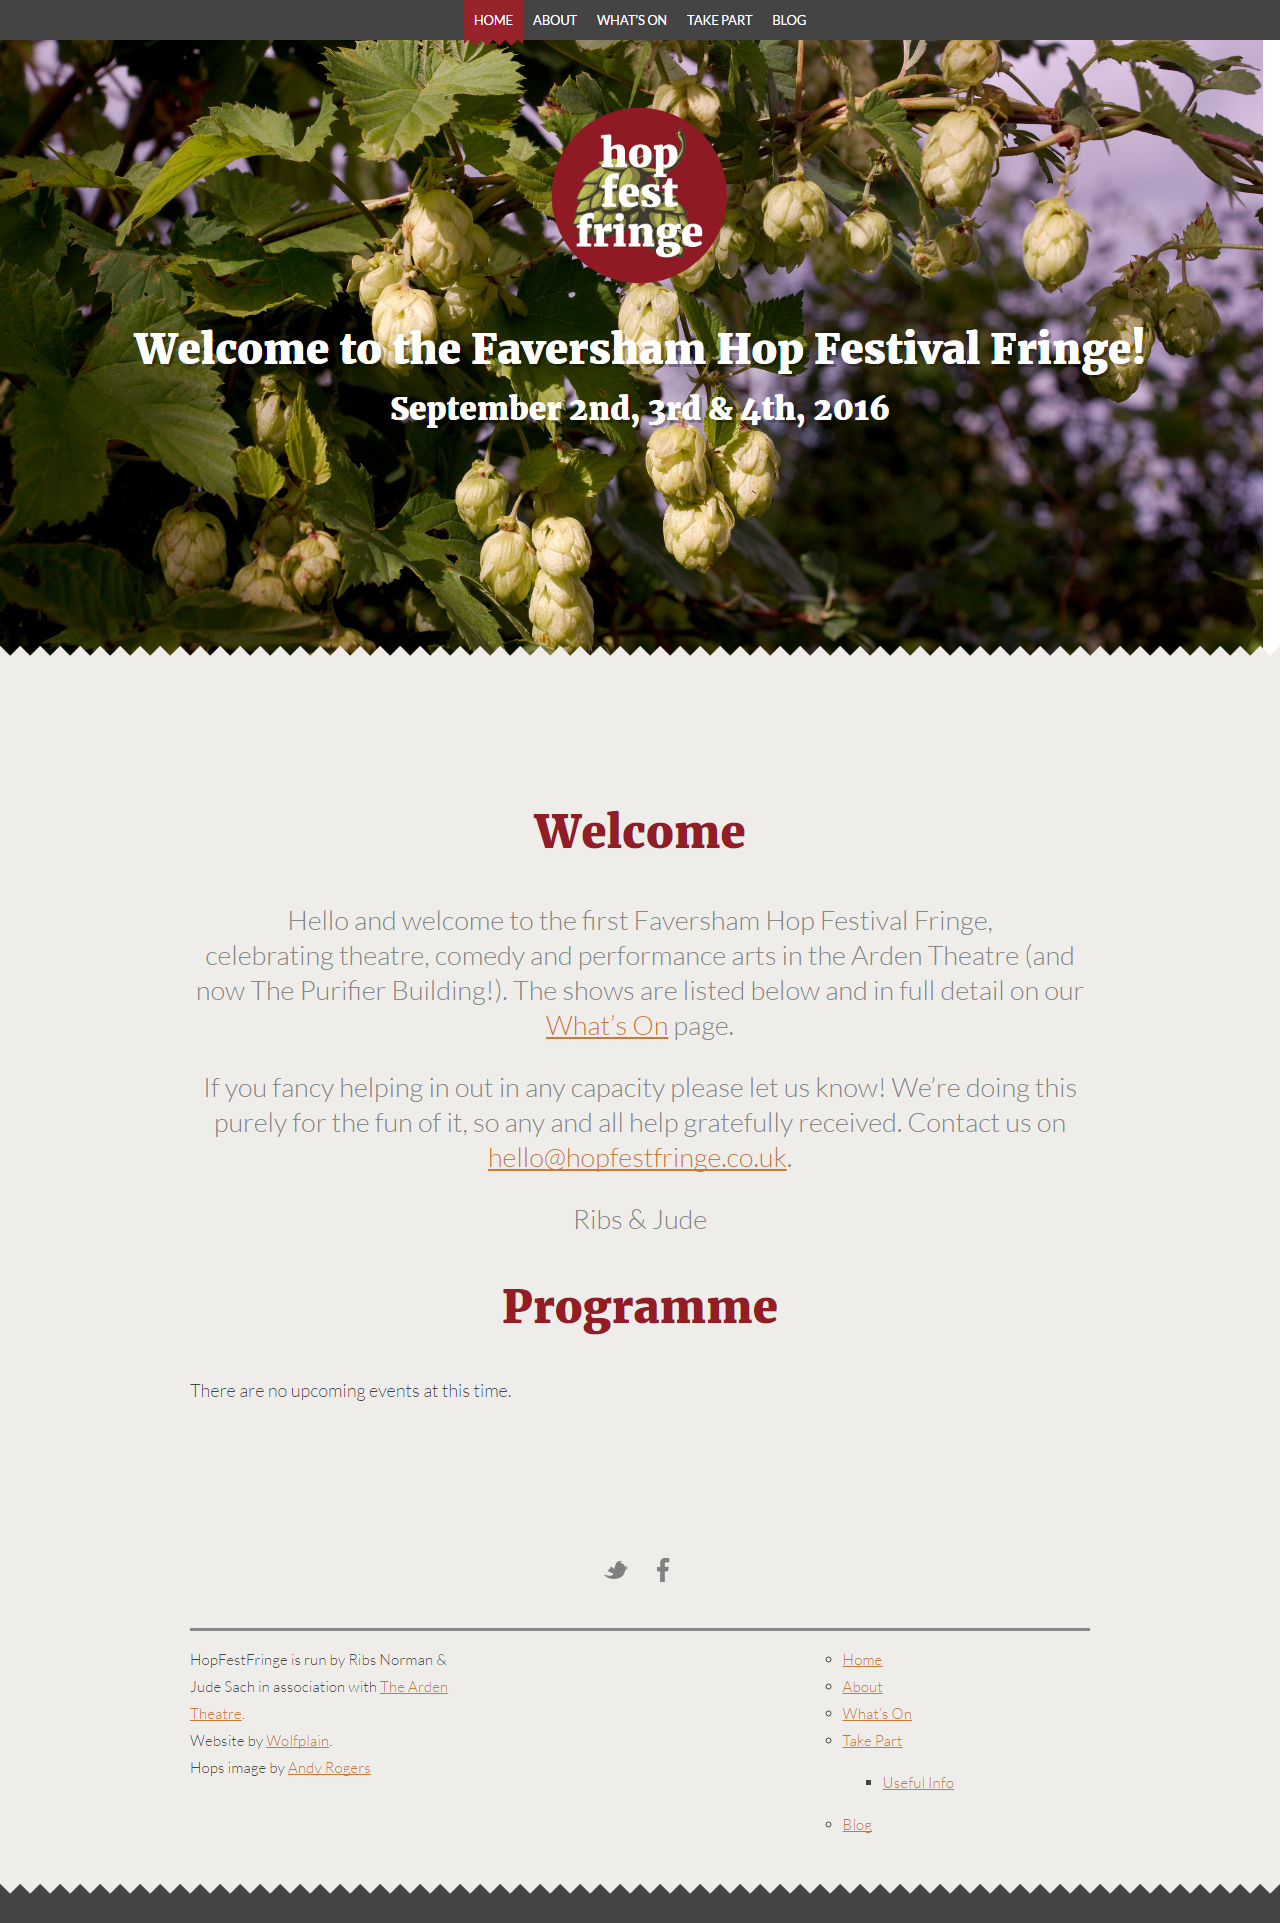 HopFestFringe Website